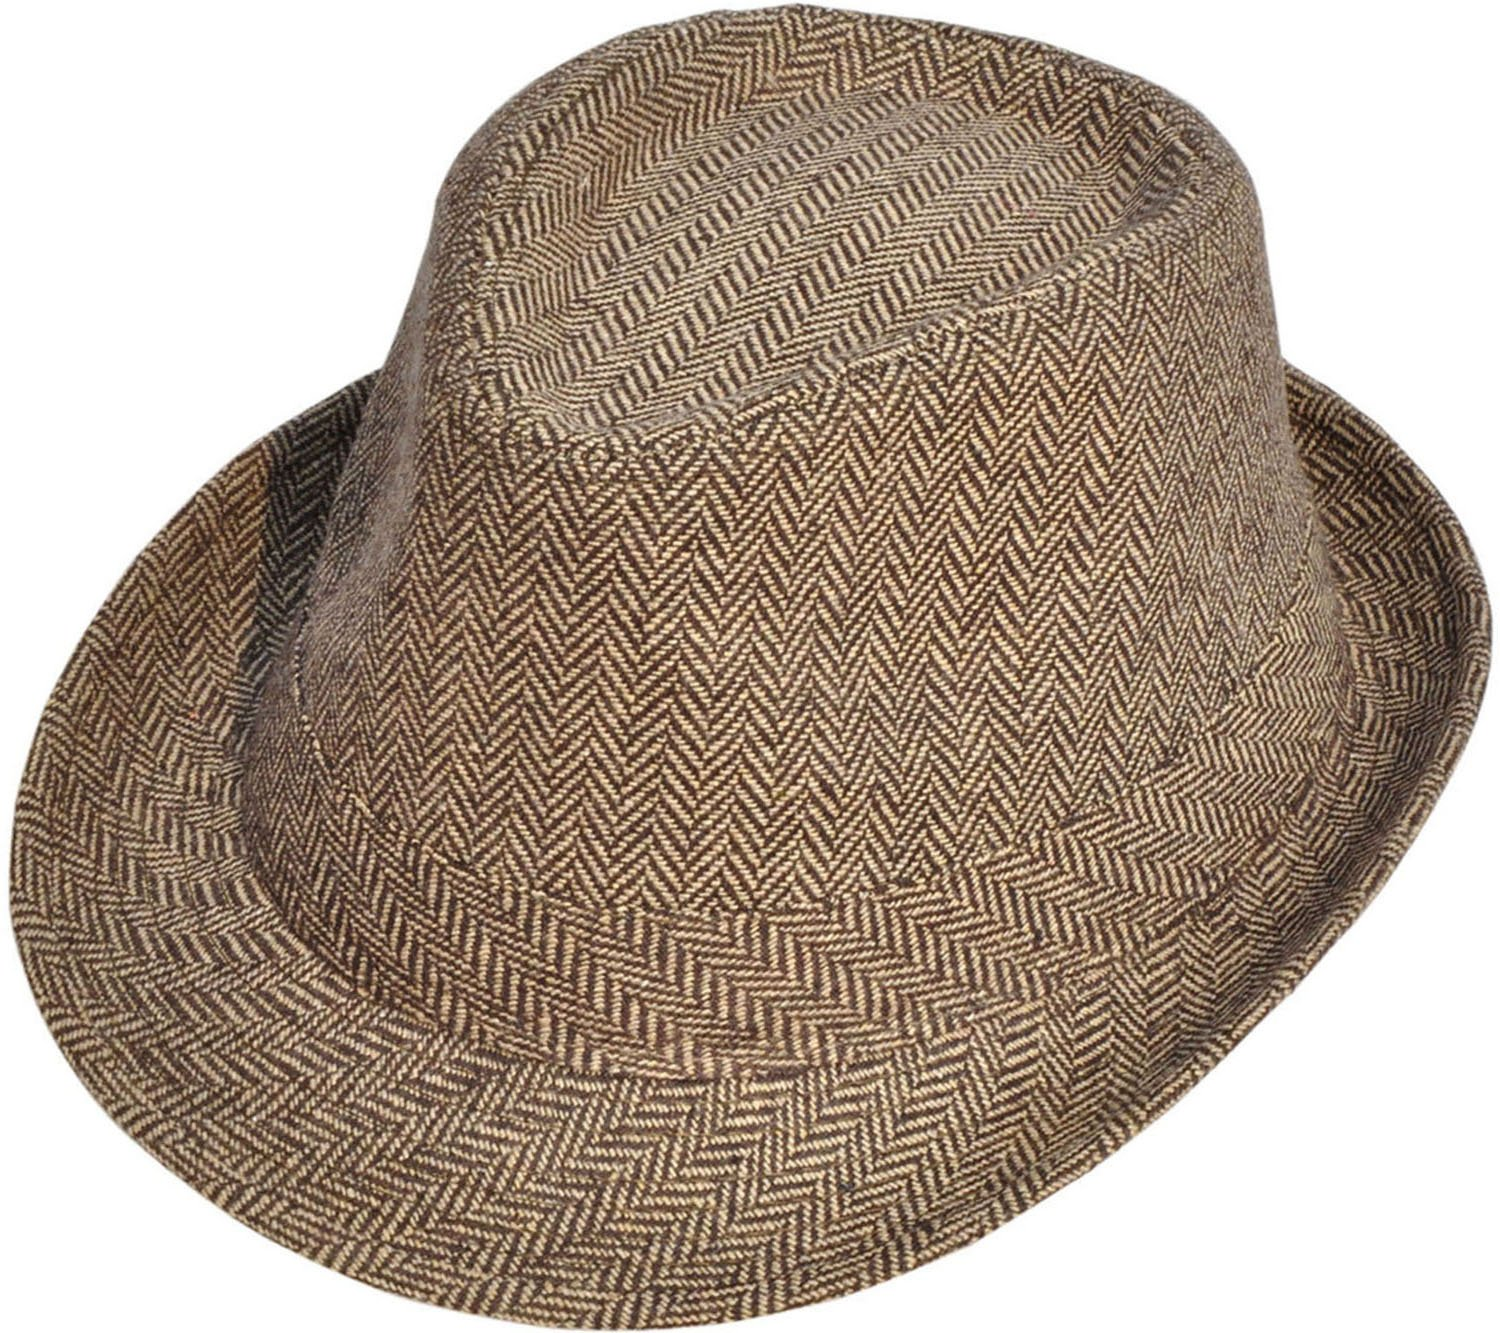 0862847ed 40% discount on Simplicity Unisex Structured Gangster Trilby Wool ...